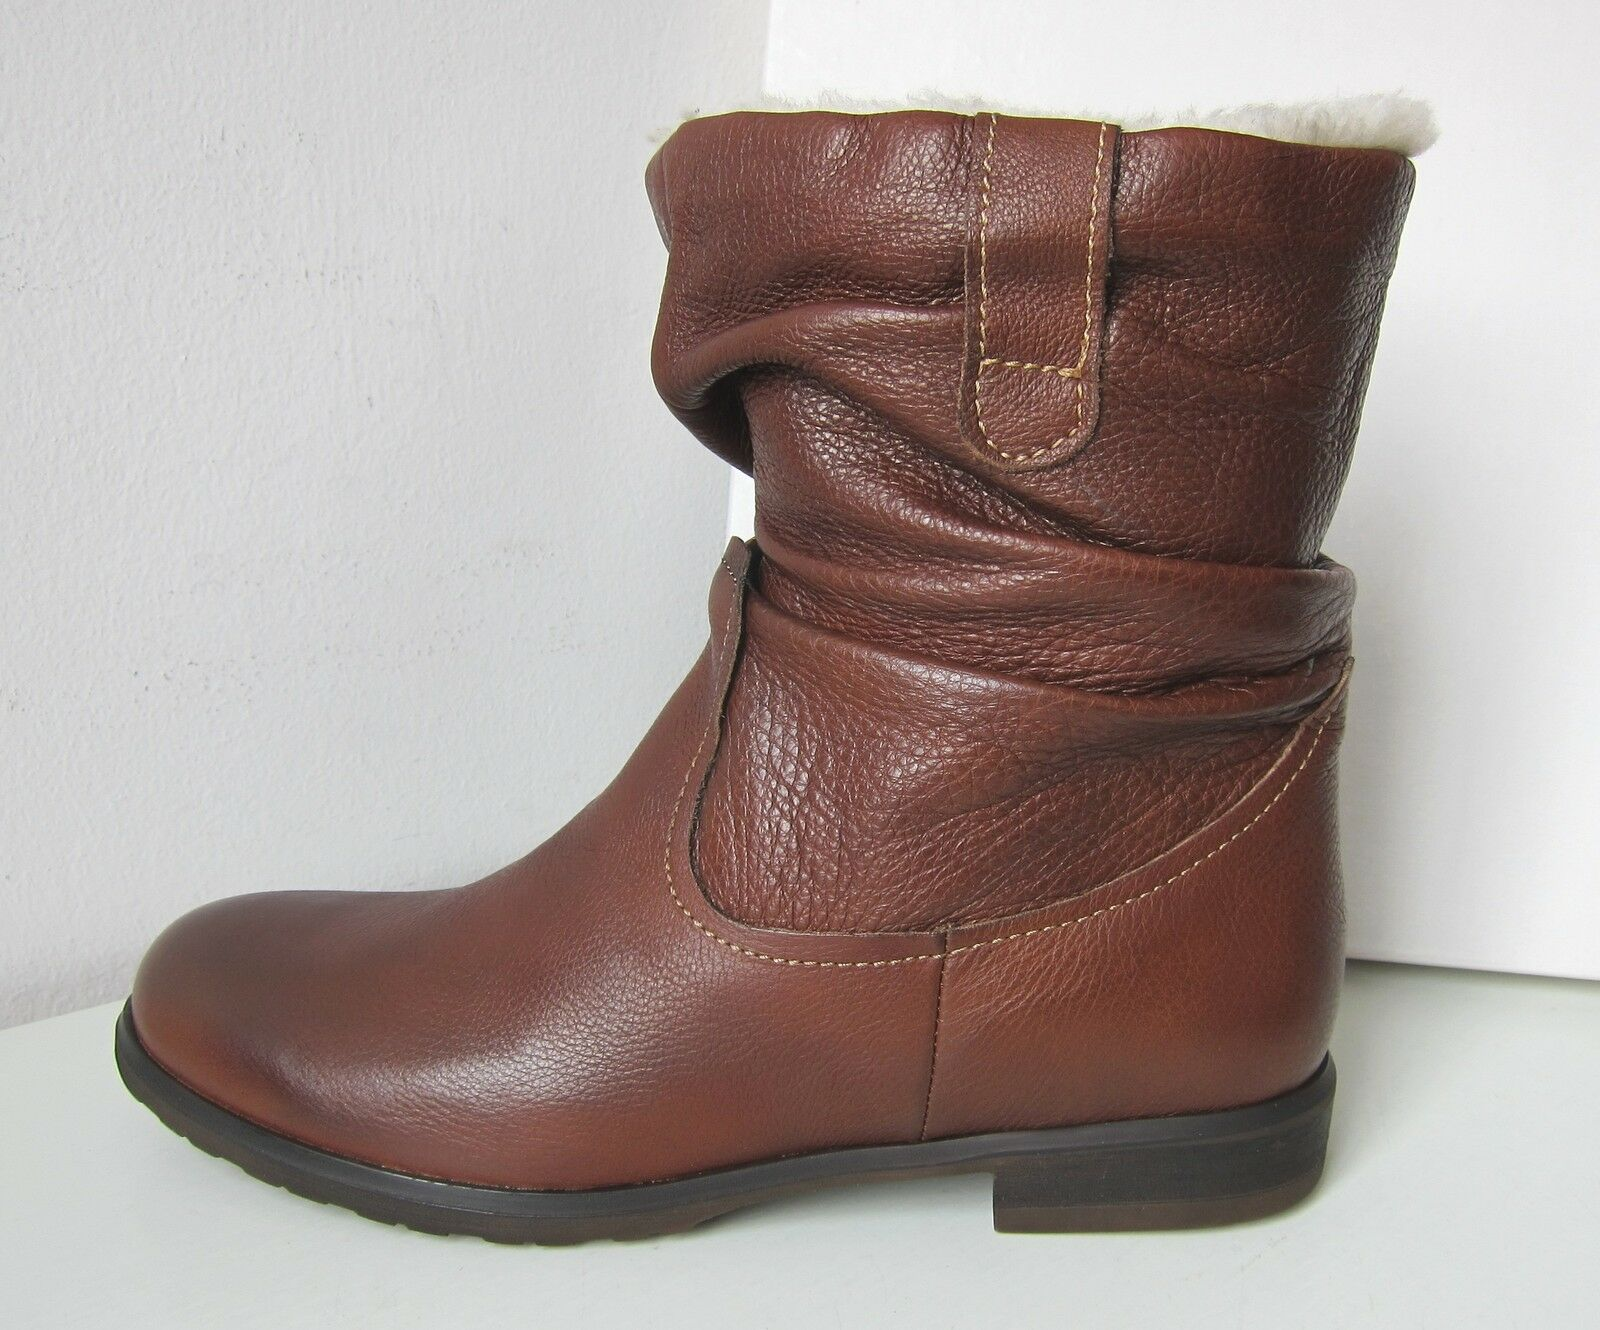 Tamaris Stiefelette Stiefel cognac brown 36 Fell Stiefel Boots brown bootee warm